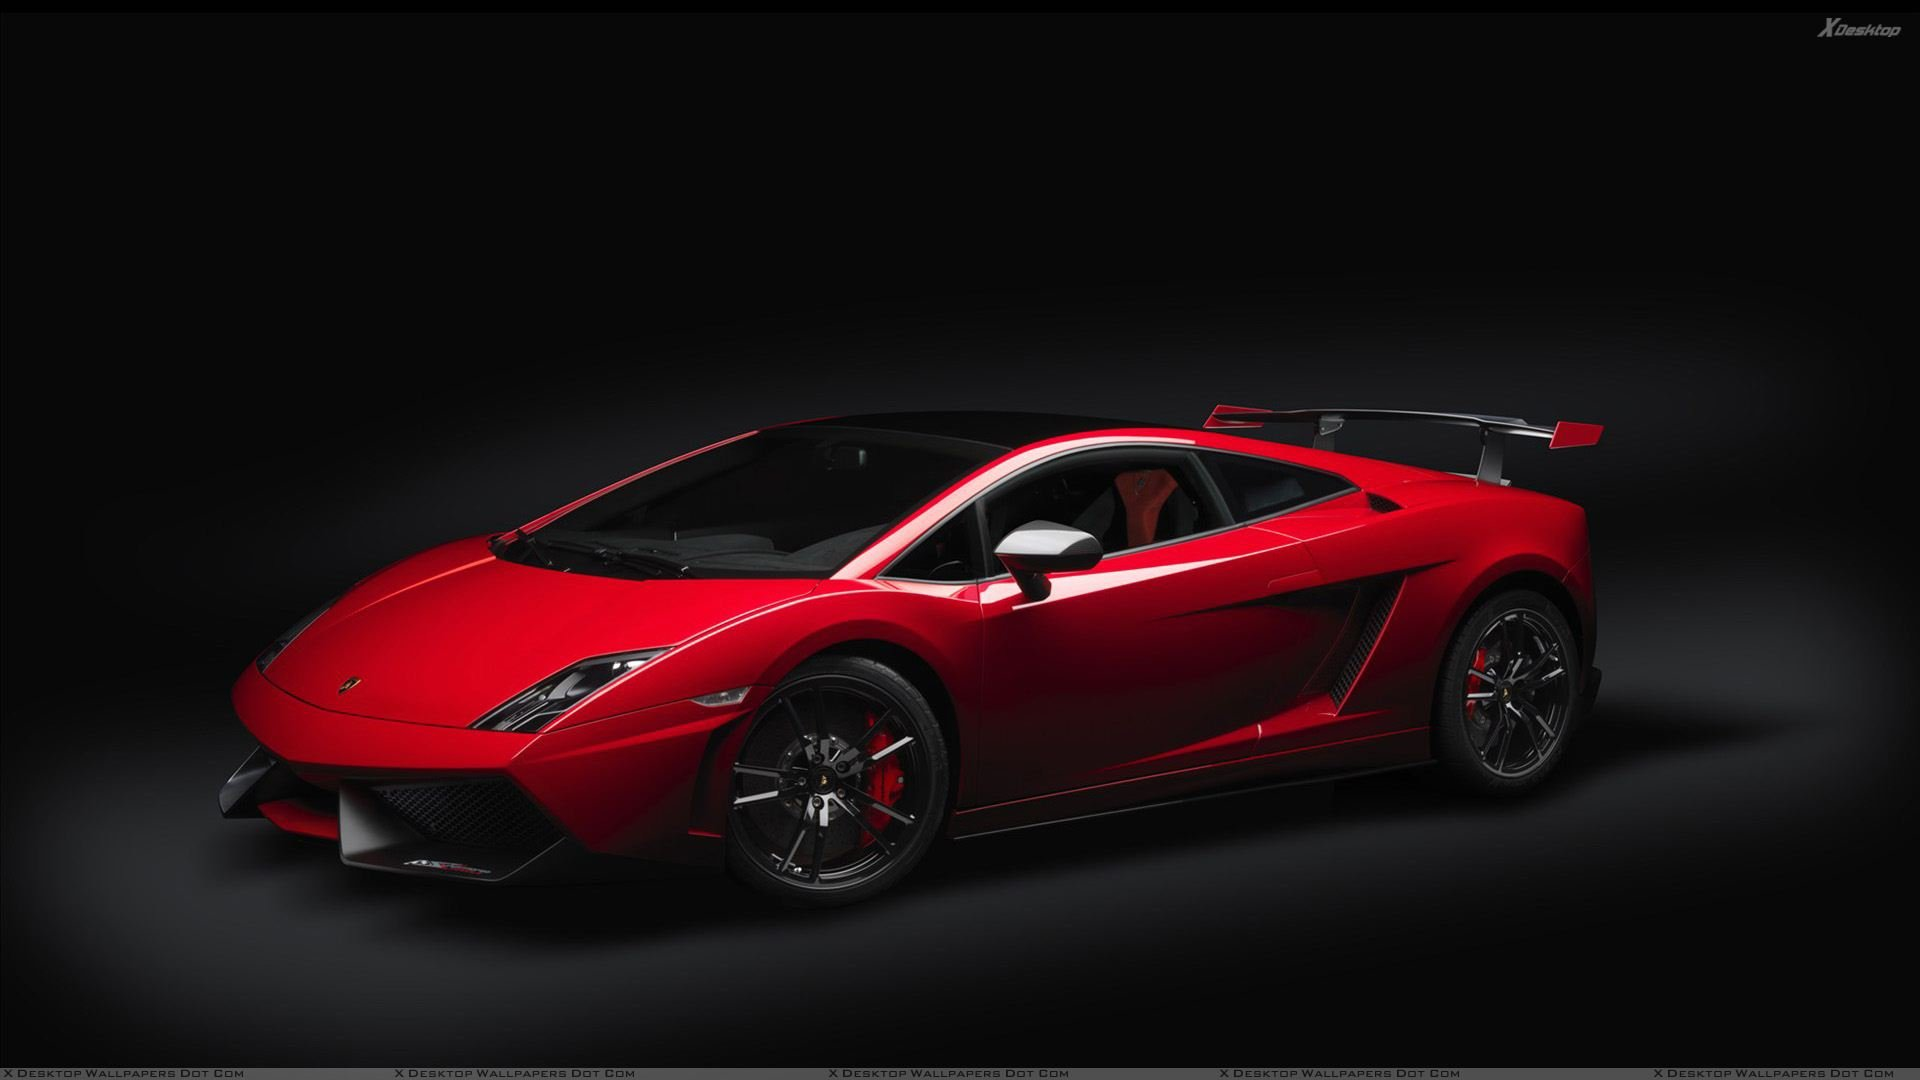 Red Lamborghini Wallpaper 4508 Hd Wallpapers in Cars   Imagescicom 1920x1080